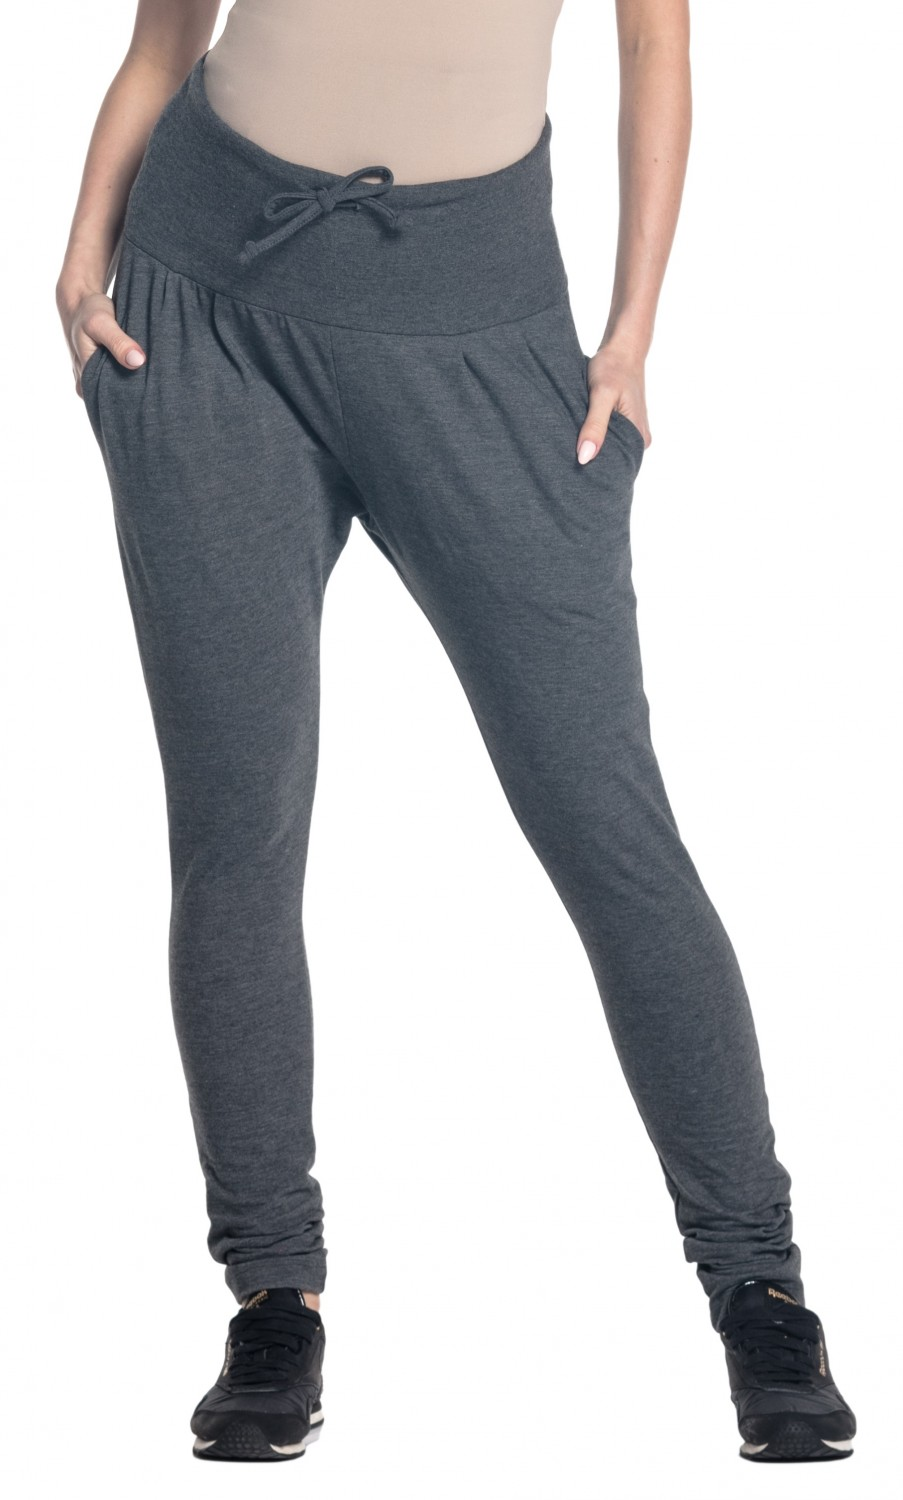 bc154e9b3d0 Details about Happy Mama Women's Maternity Pants Elastic Belly Band  Trousers Drop Crotch. 583p